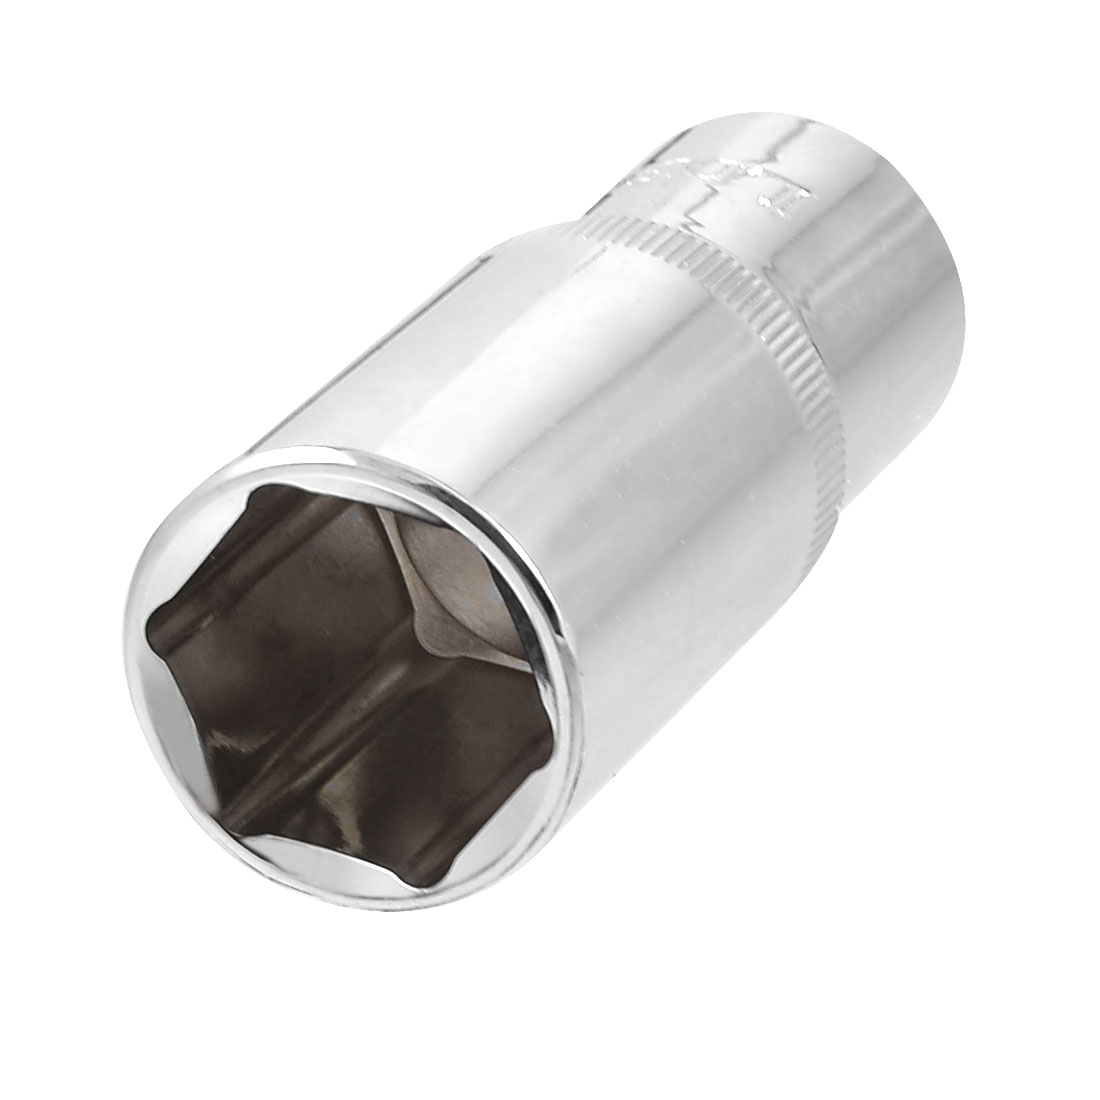 "Auto 1/2"" Square Drive Chrome-vanadium Steel 24mm 6 Point Axle Nut Socket"